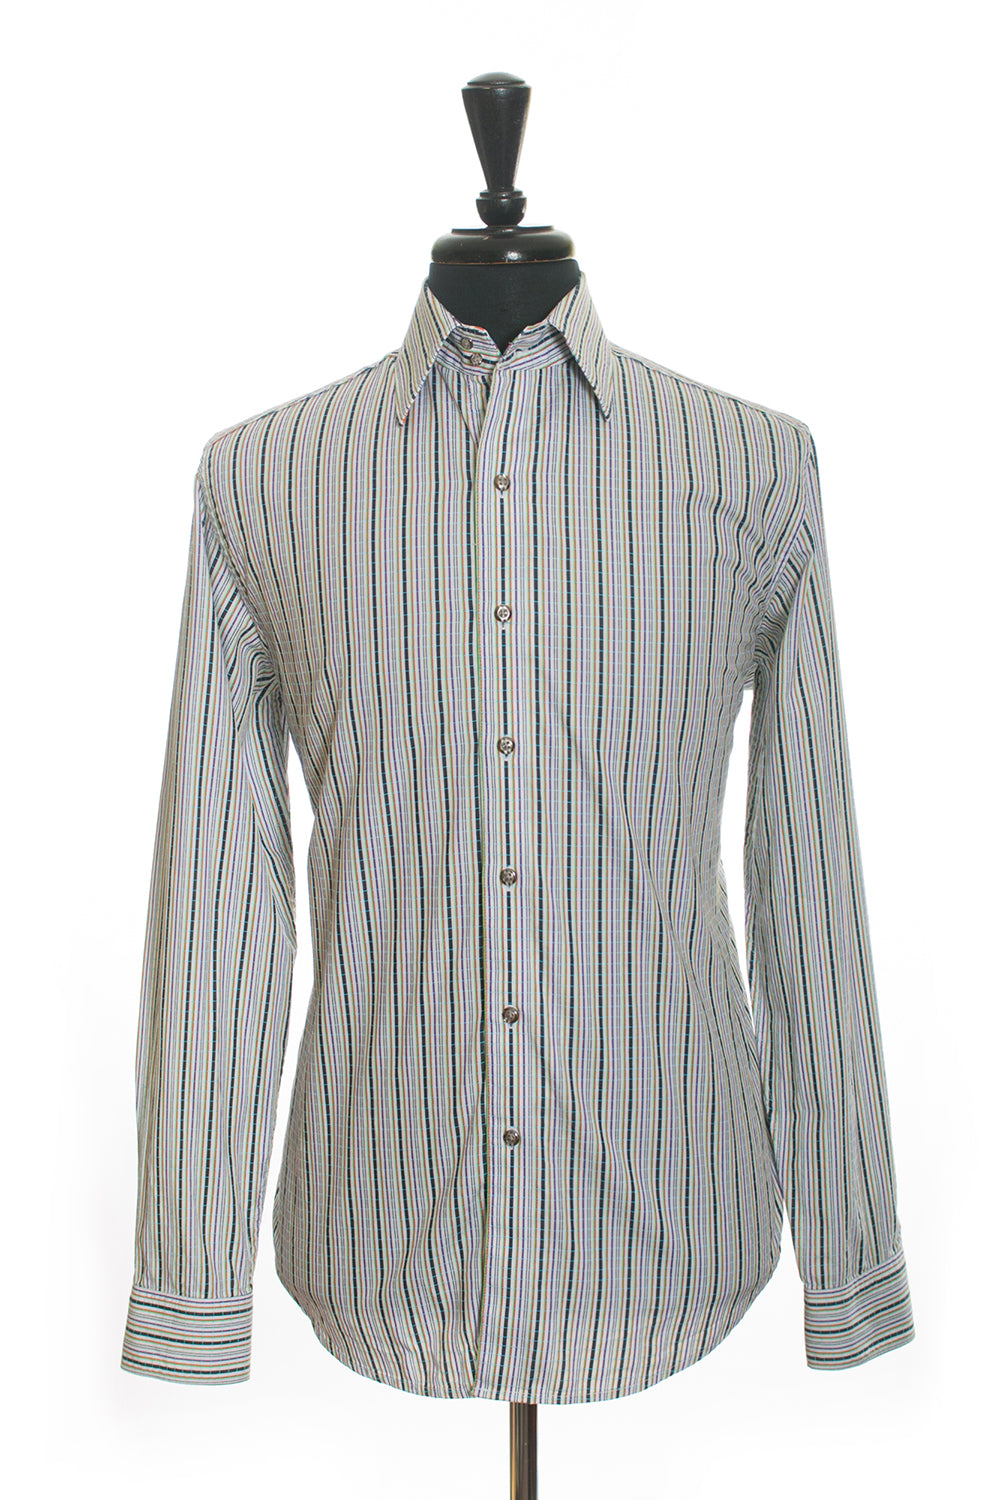 Robert Graham Bold Pattern Stripe Shirt